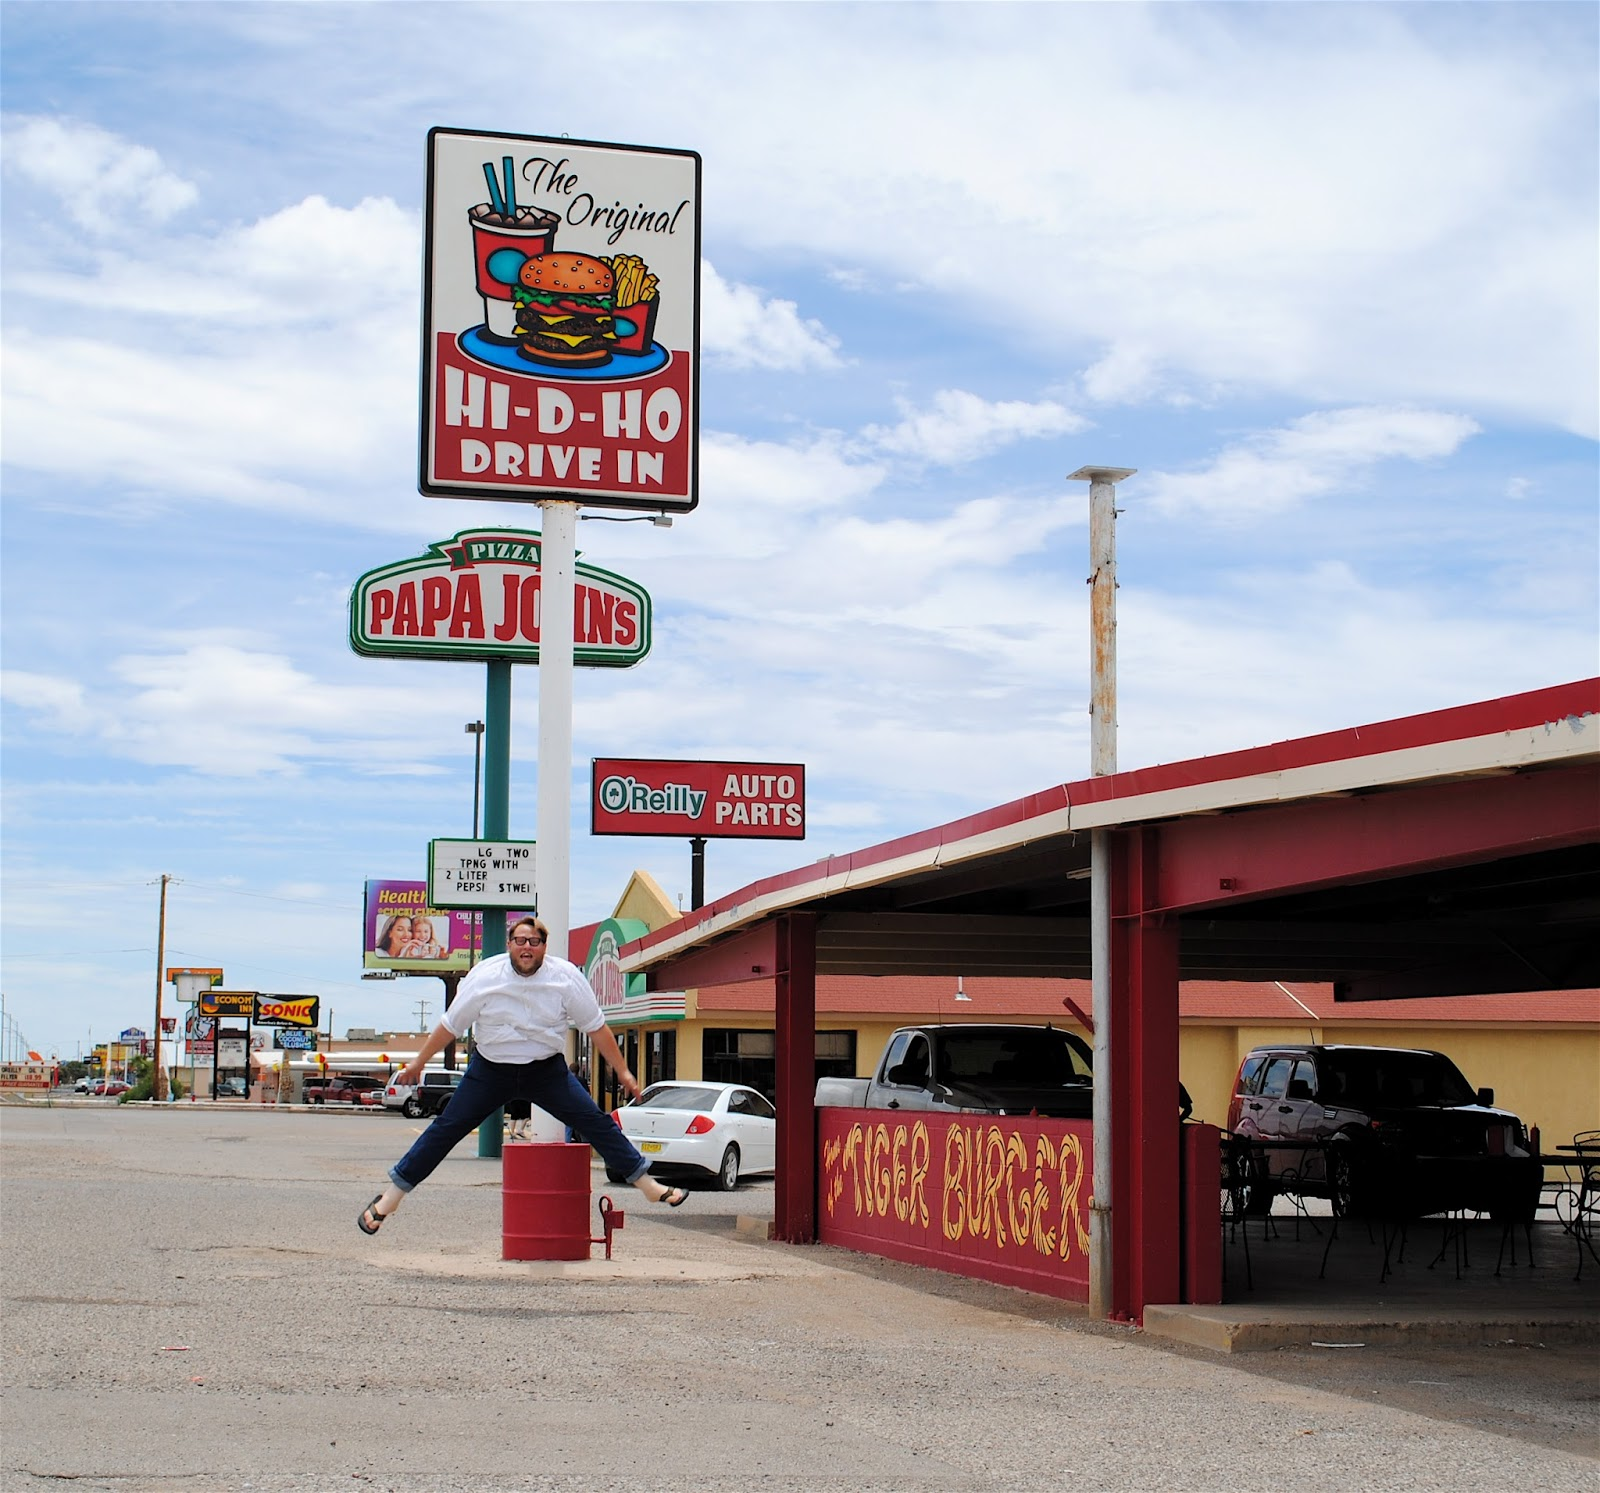 ... Pizza Patio Alamogordo Nm By Wacky Tacky Chow Time Hi D Ho Drive In ...